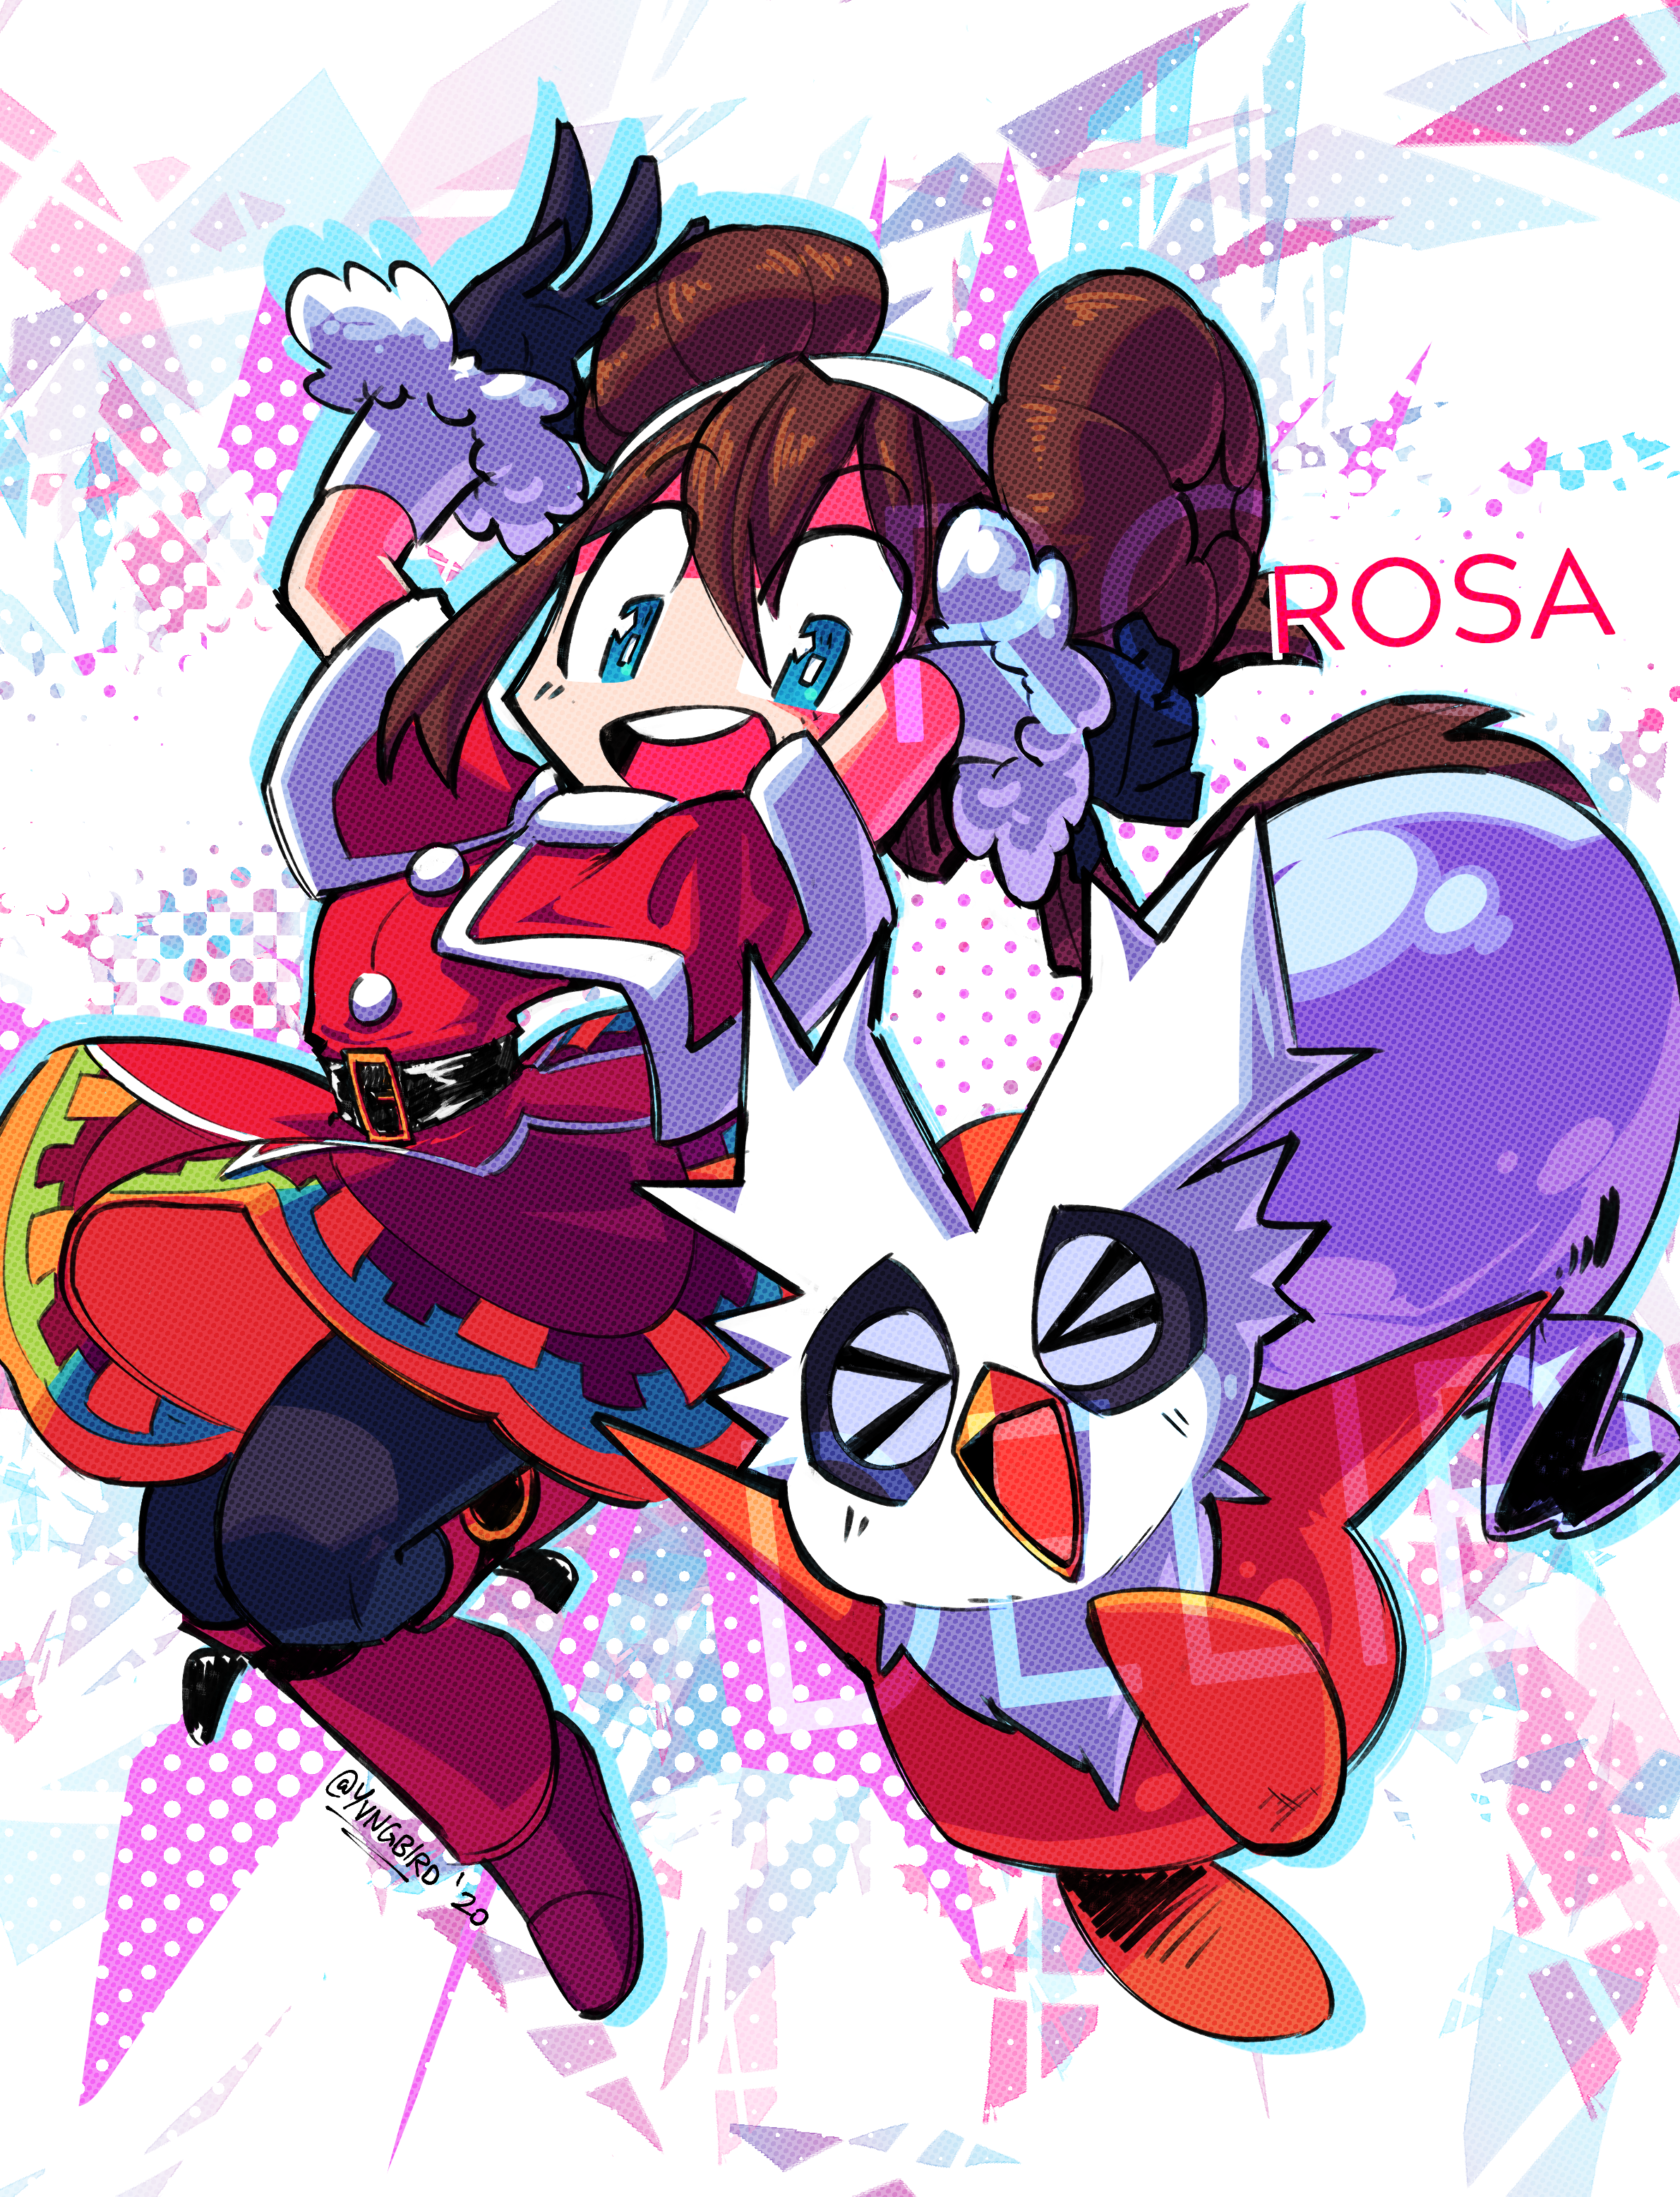 rosa [chimmus outfit]